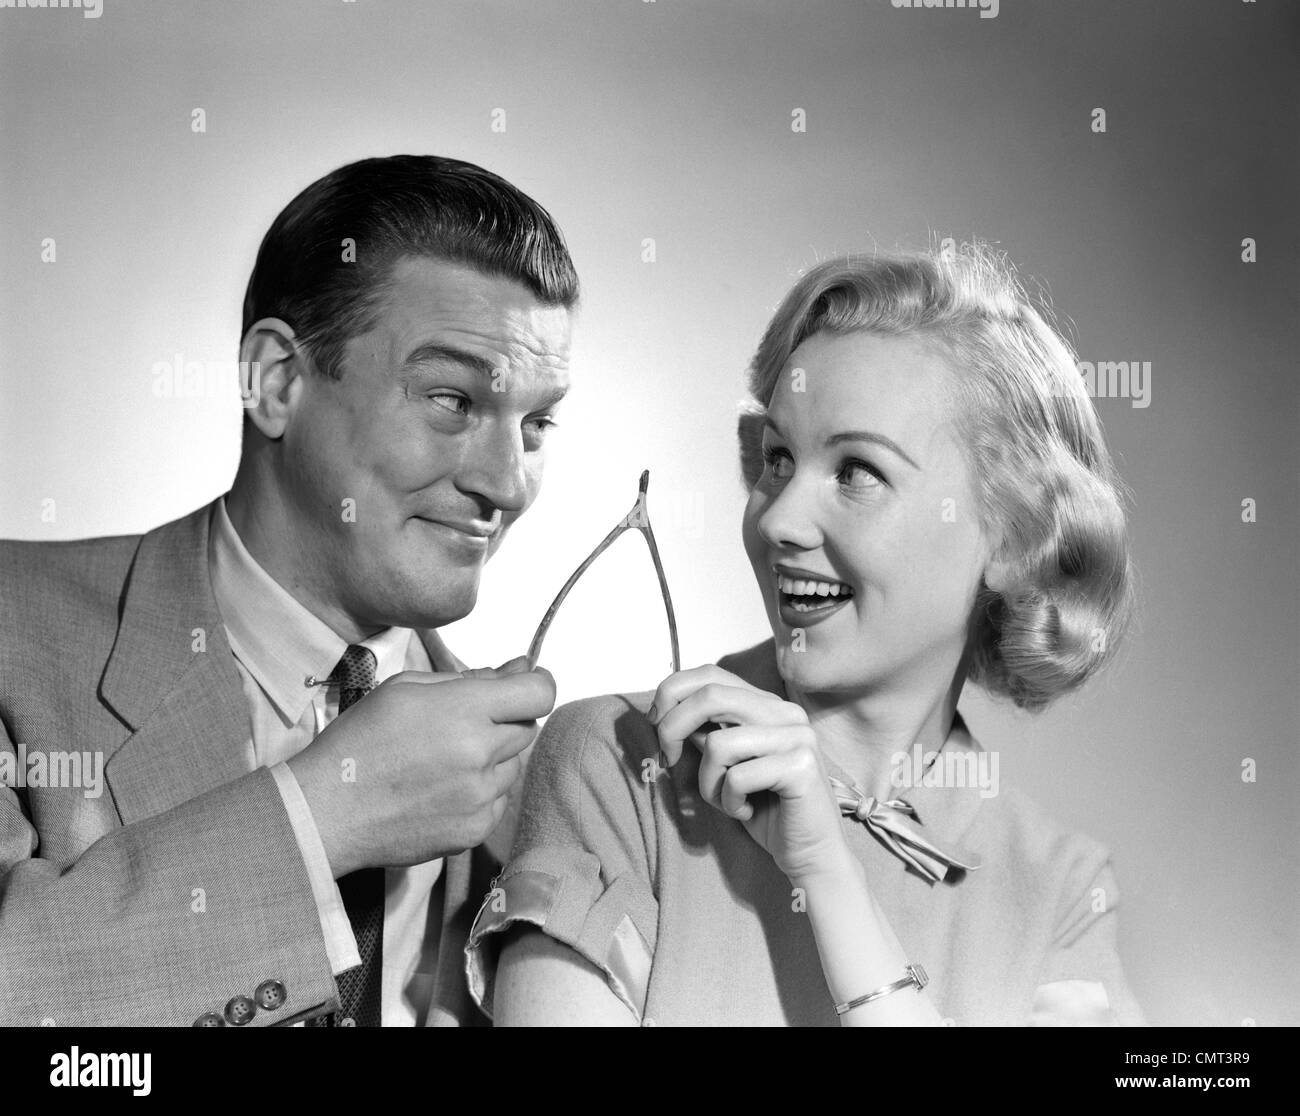 1950 PORTRAIT DE COUPLE HOLDING TRIANGLE INFÉRIEUR Photo Stock